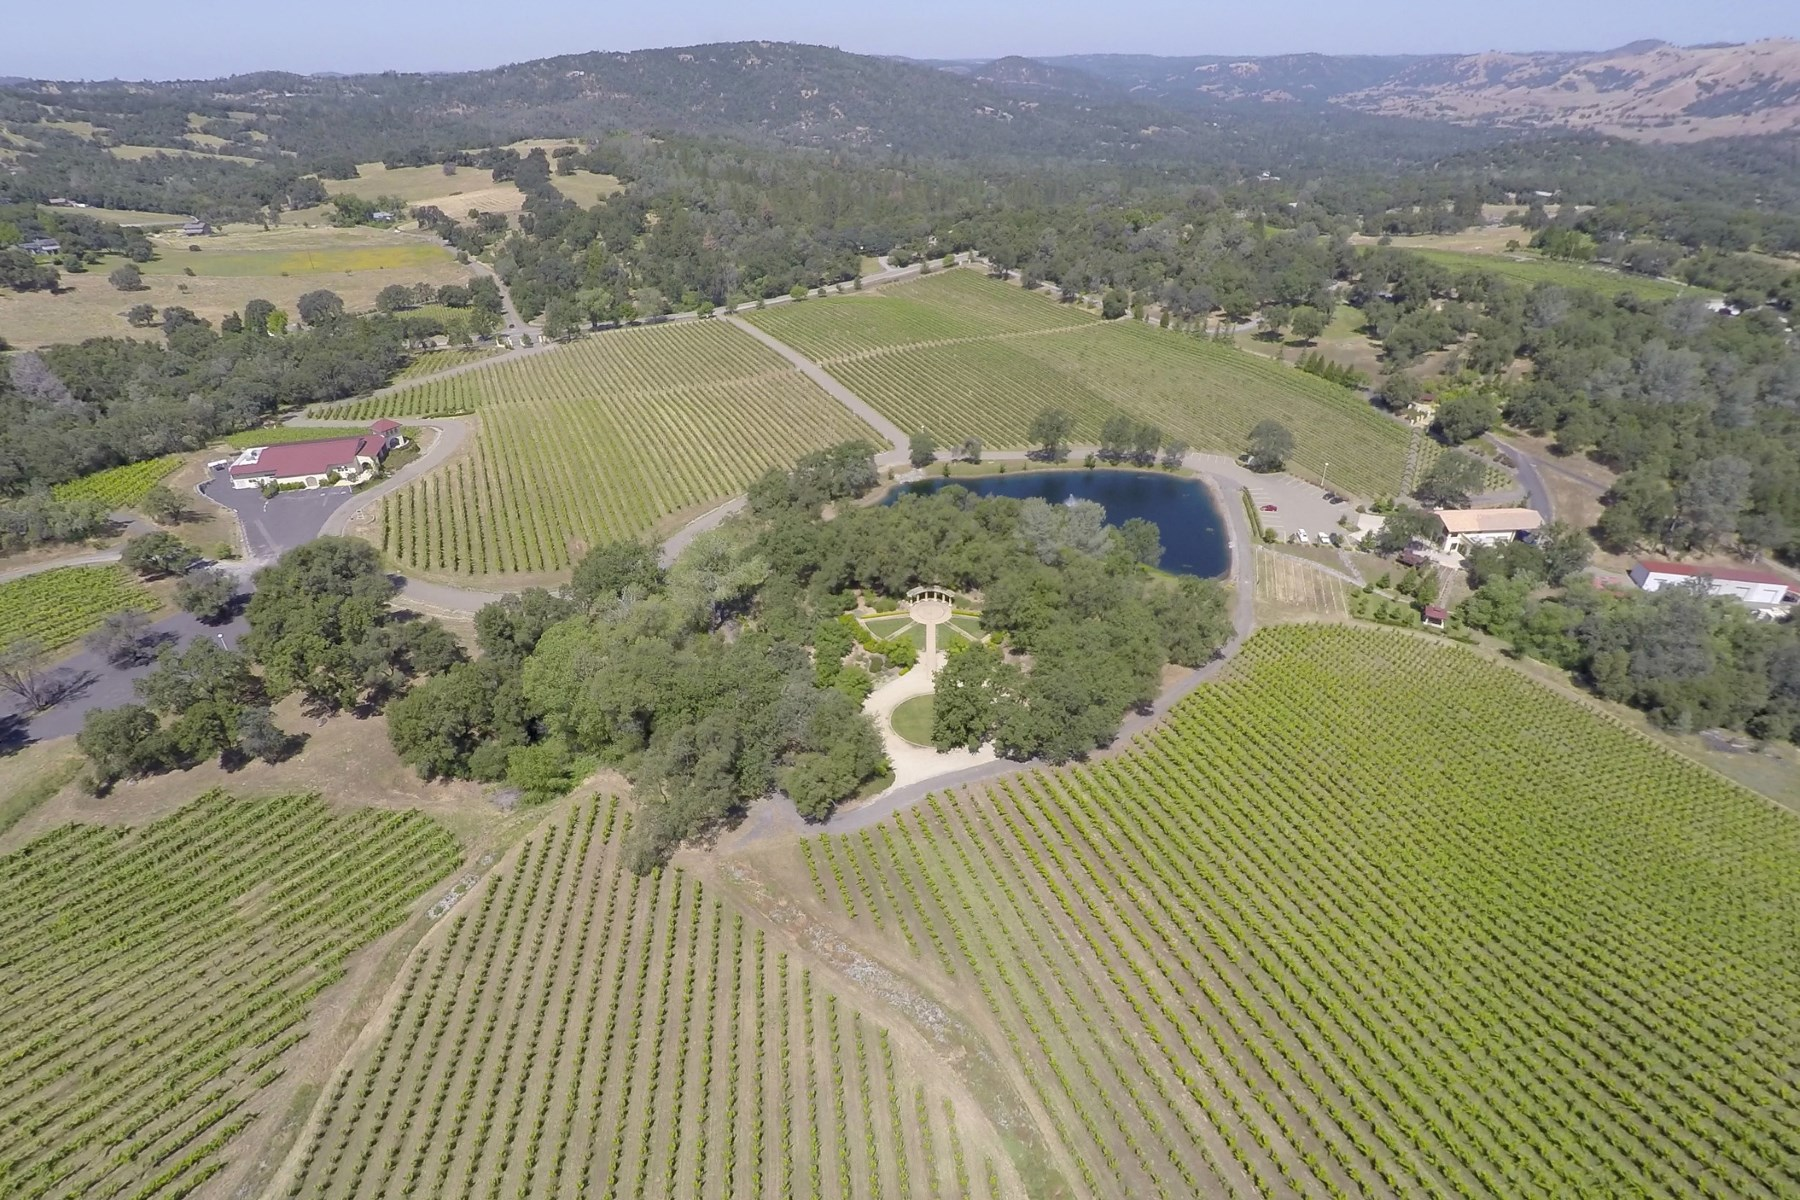 Vineyard for Sale at David Girard Vineyards 741 Cold Springs Rd Placerville, California, 95667 United States